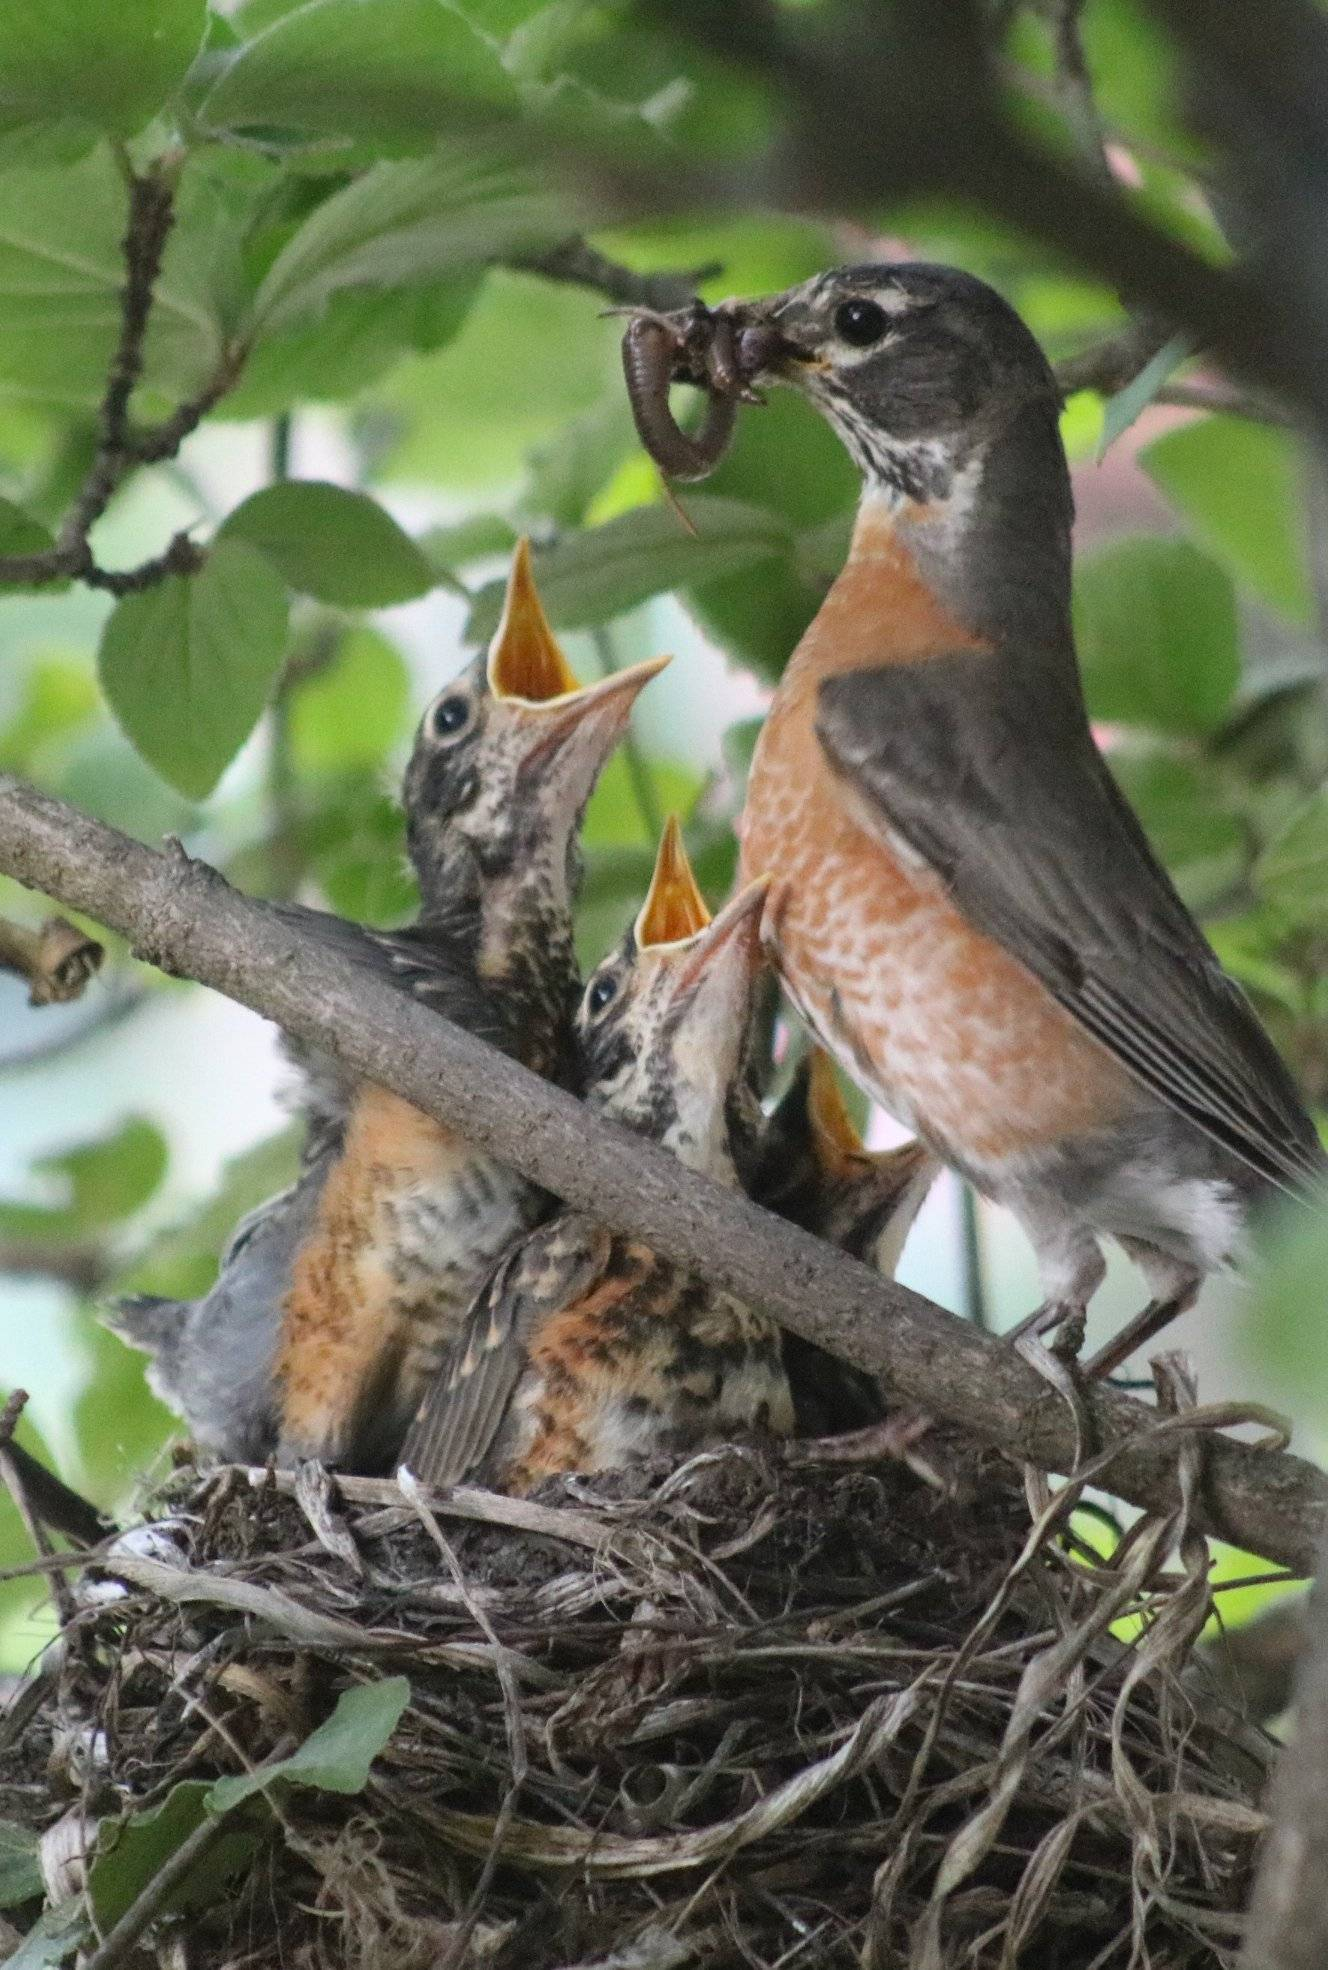 A robin feeding her young in Naperville.